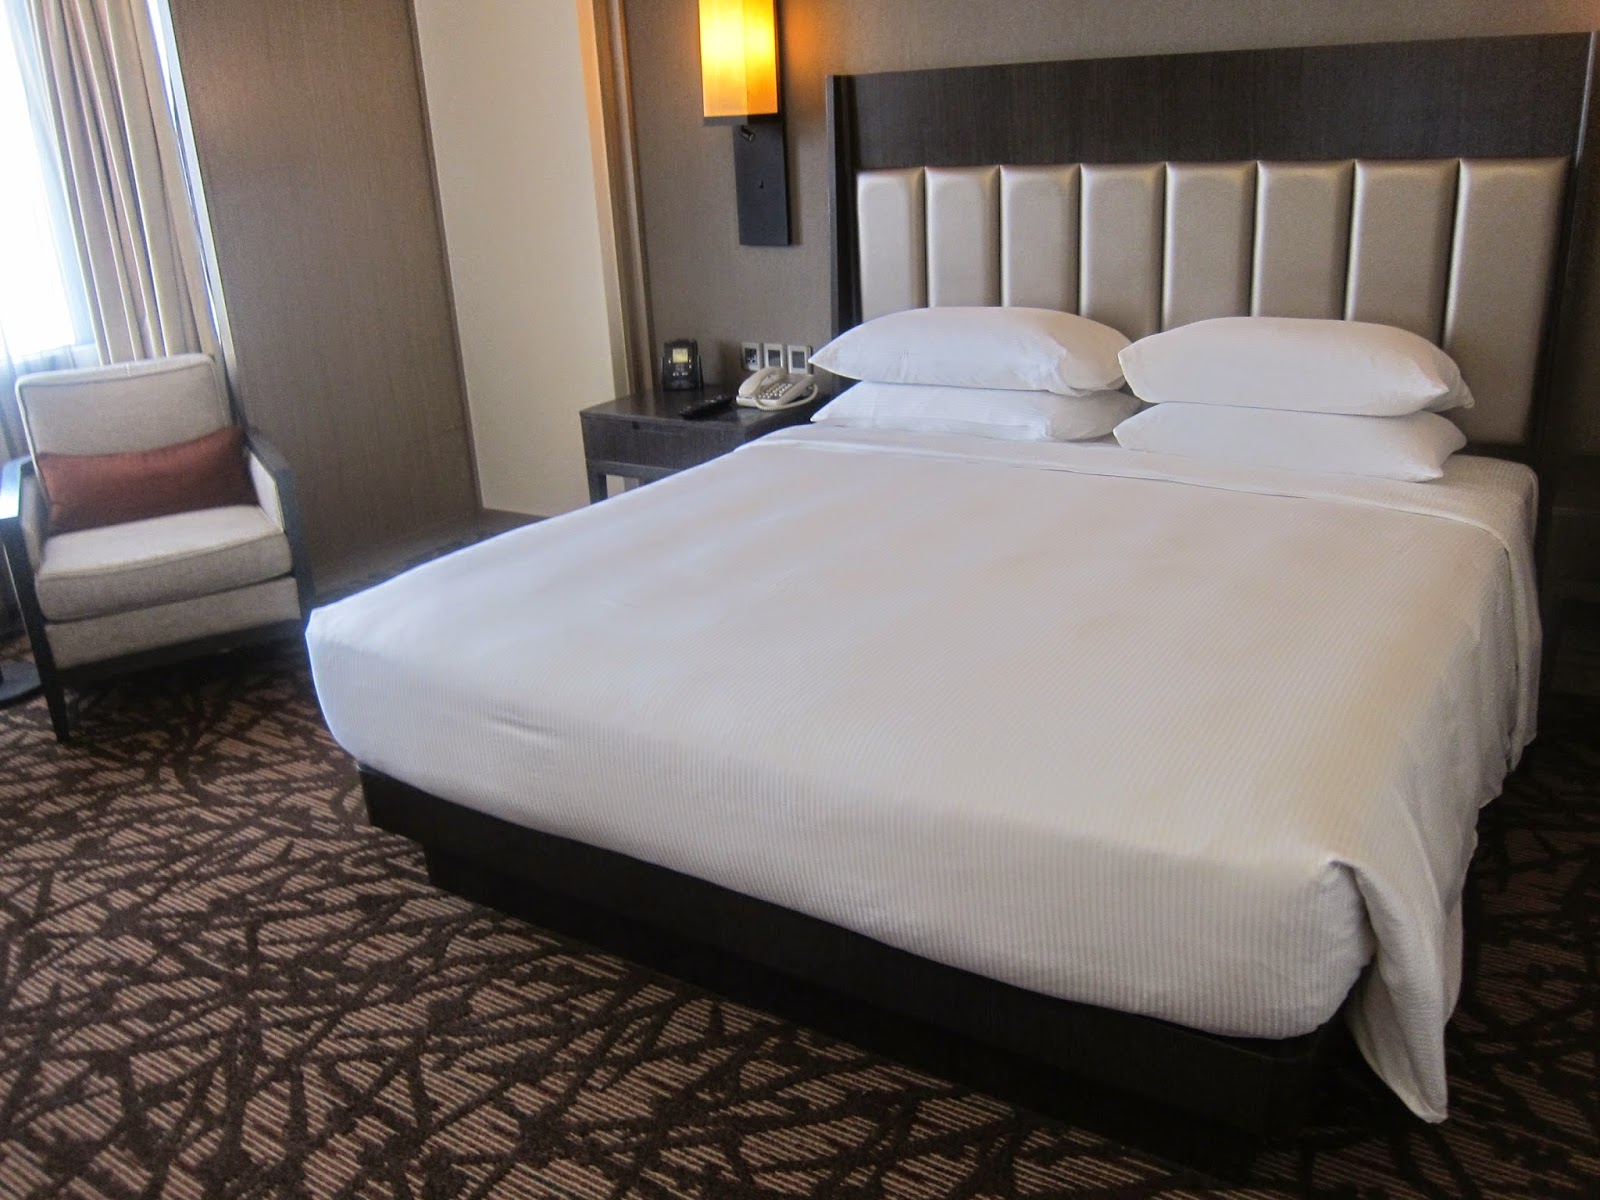 Hilton Petaling Jaya Executive Room Photos